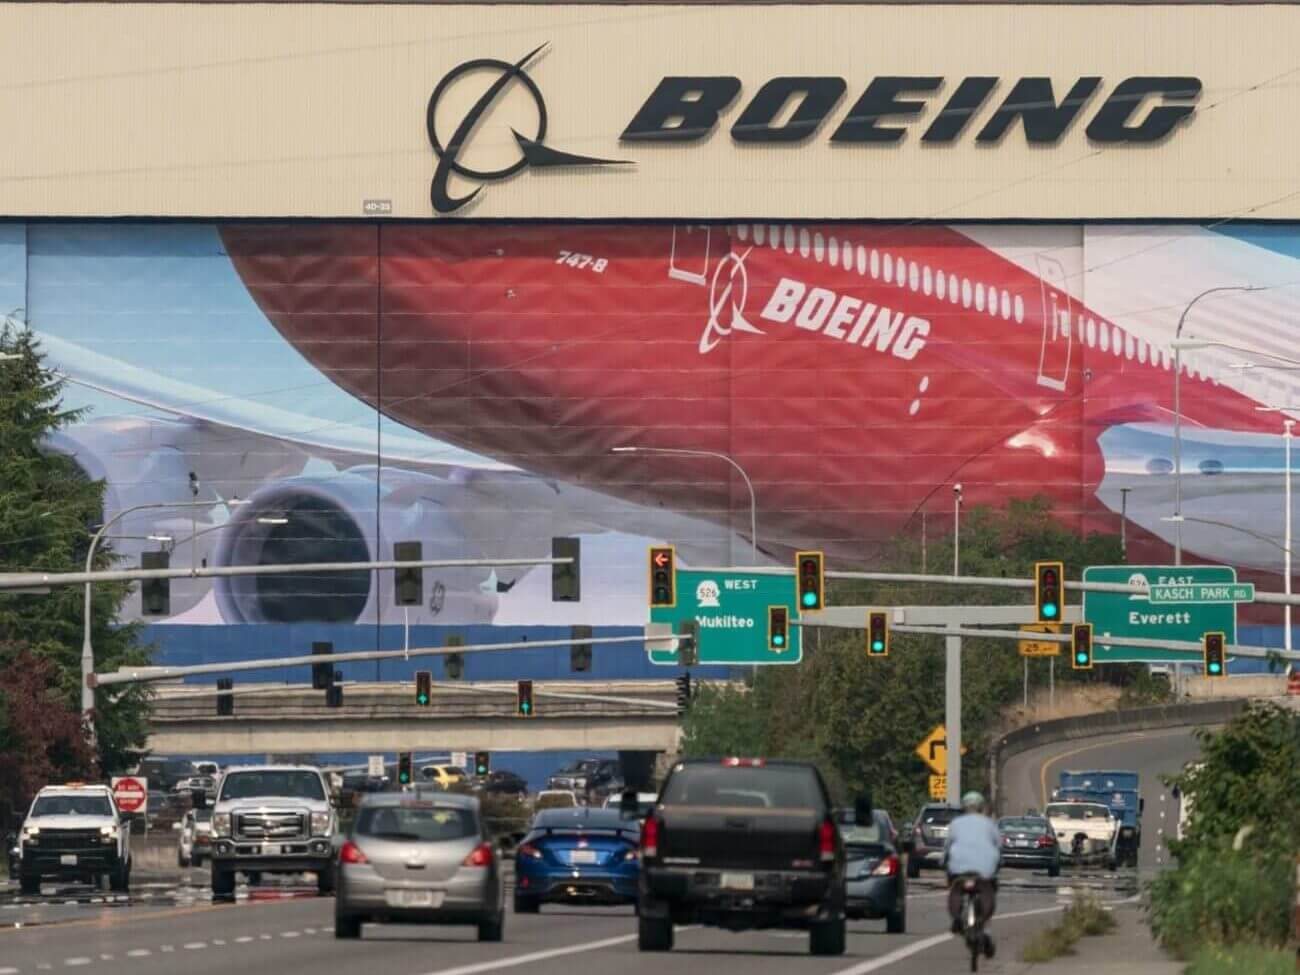 Boeing Is the Most popular Company to Spoil out a Opposed Industry Ambiance